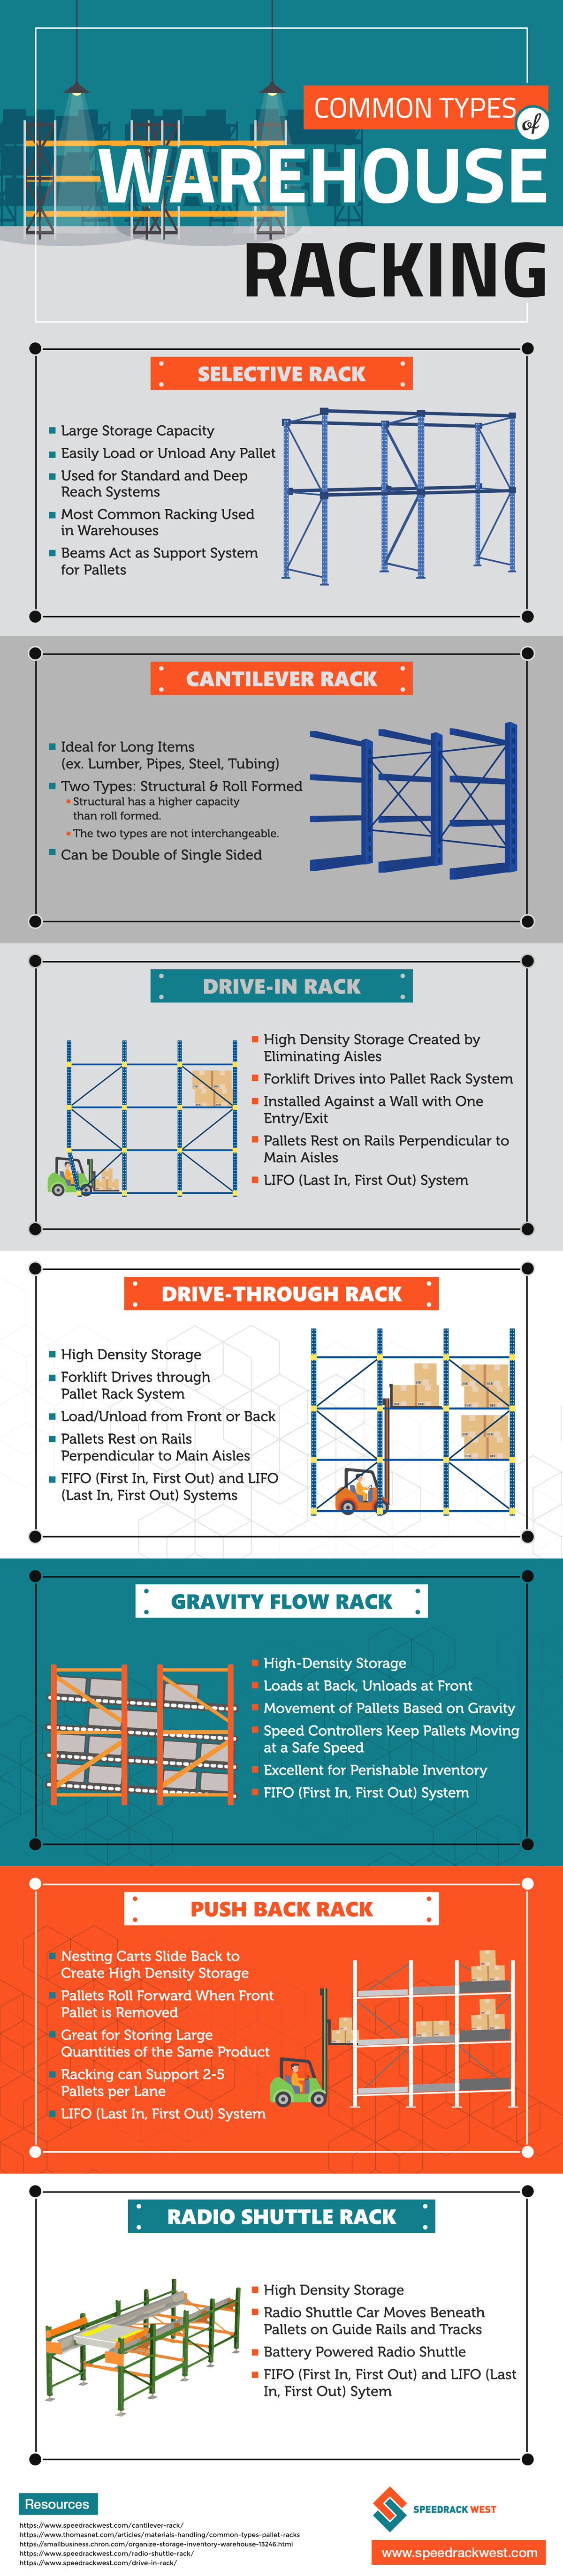 Common Types of Warehouse Racking